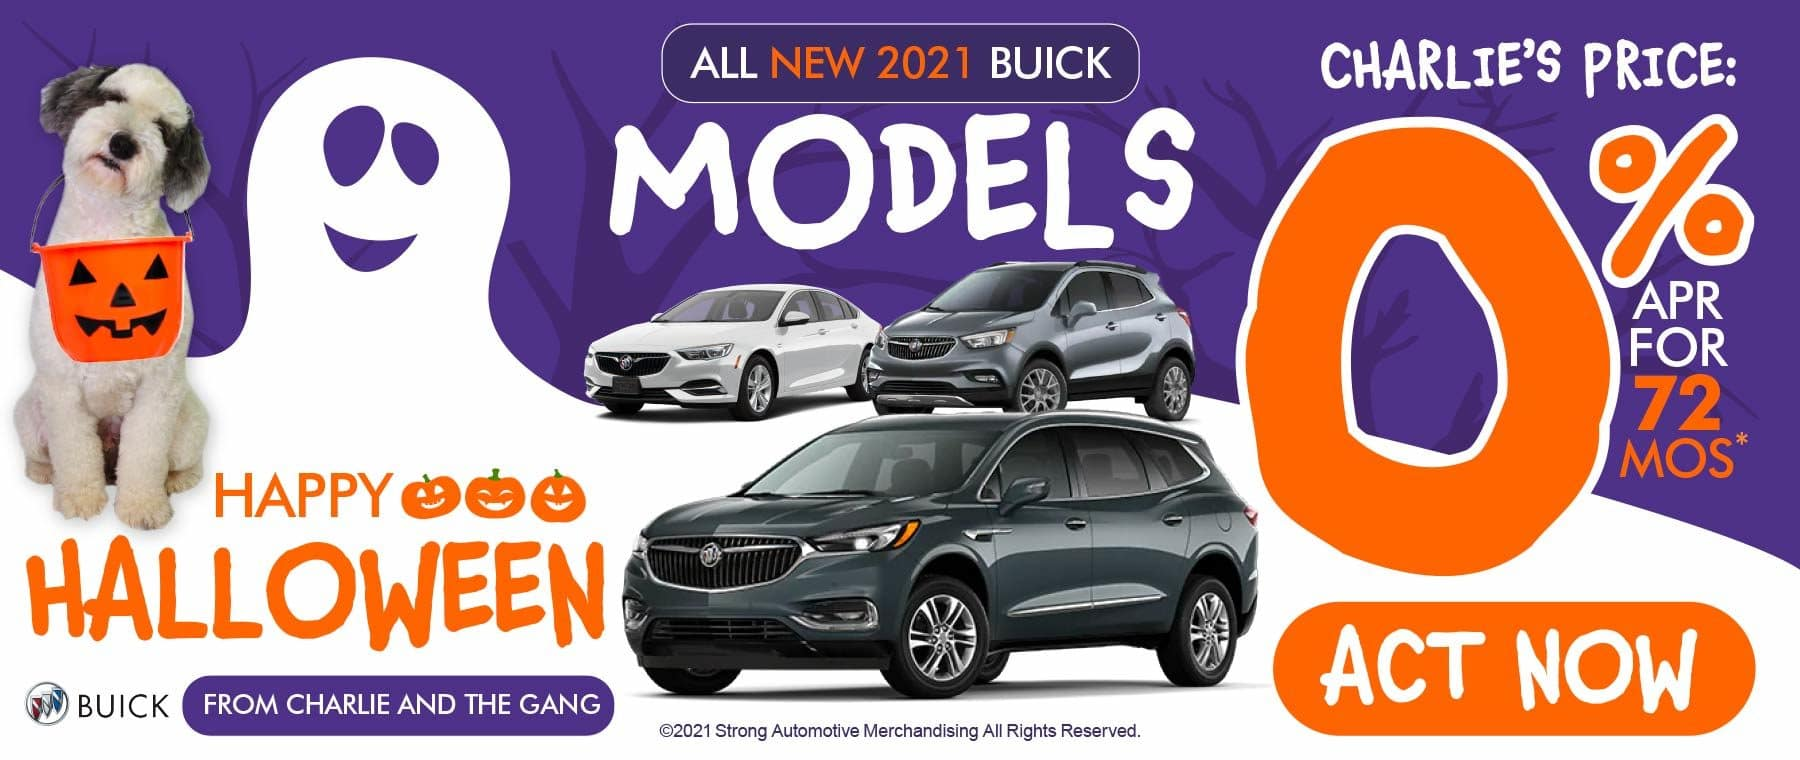 All New 2021 Buick Models - Charlie's Price: 0% APR for 72 months - Act Now